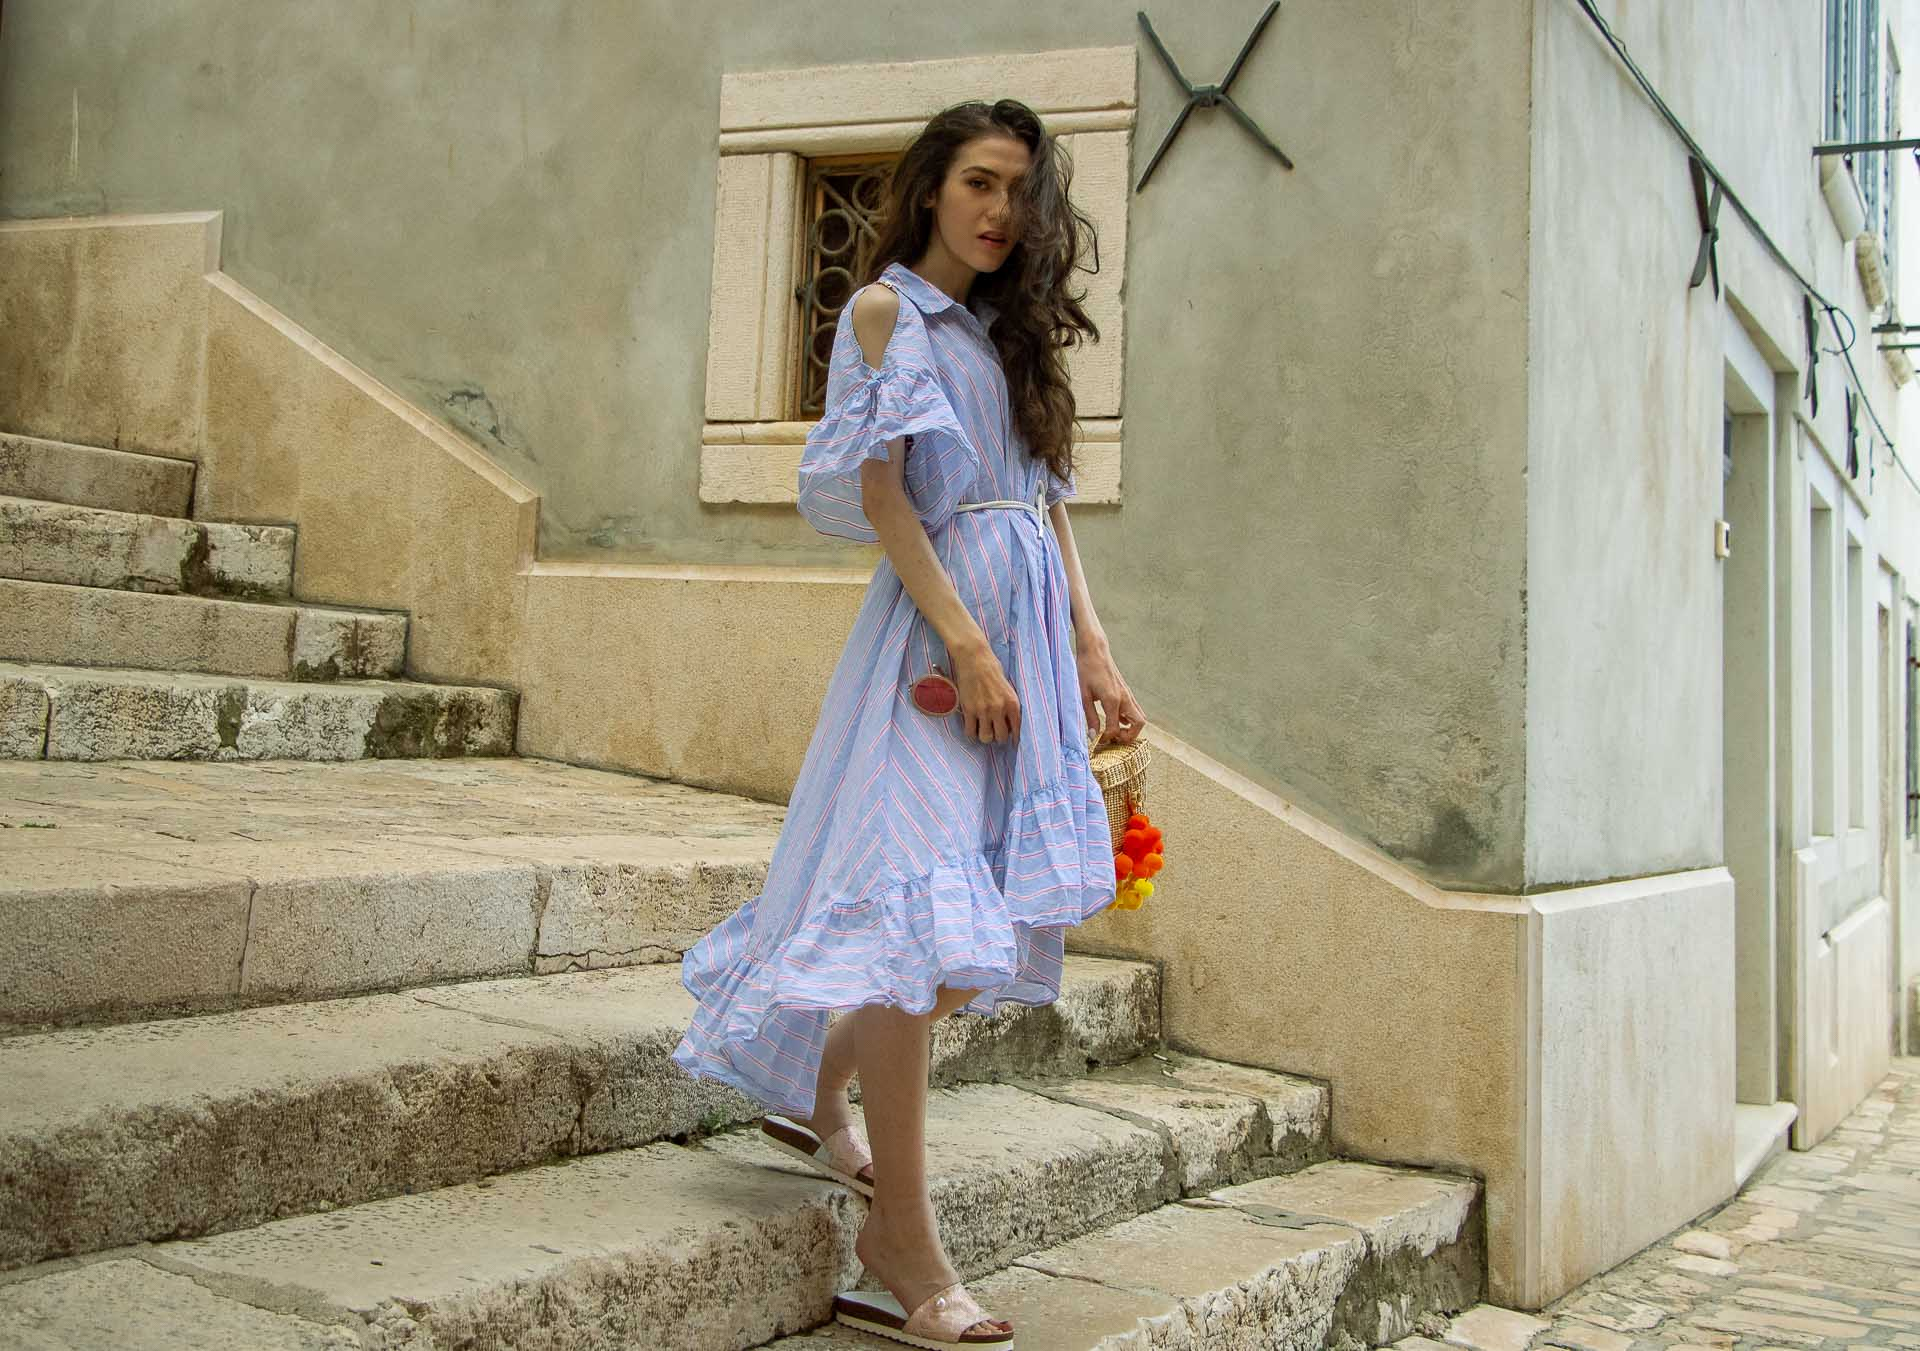 Fashion Blogger Veronika Lipar of Brunette from Wall Street wearing Storets cold shoulder striped ruffled summer dress, blush lace pool luxe slides, Nannacay basket bag, standing on the stone paved stairs in Rovinj Croatia